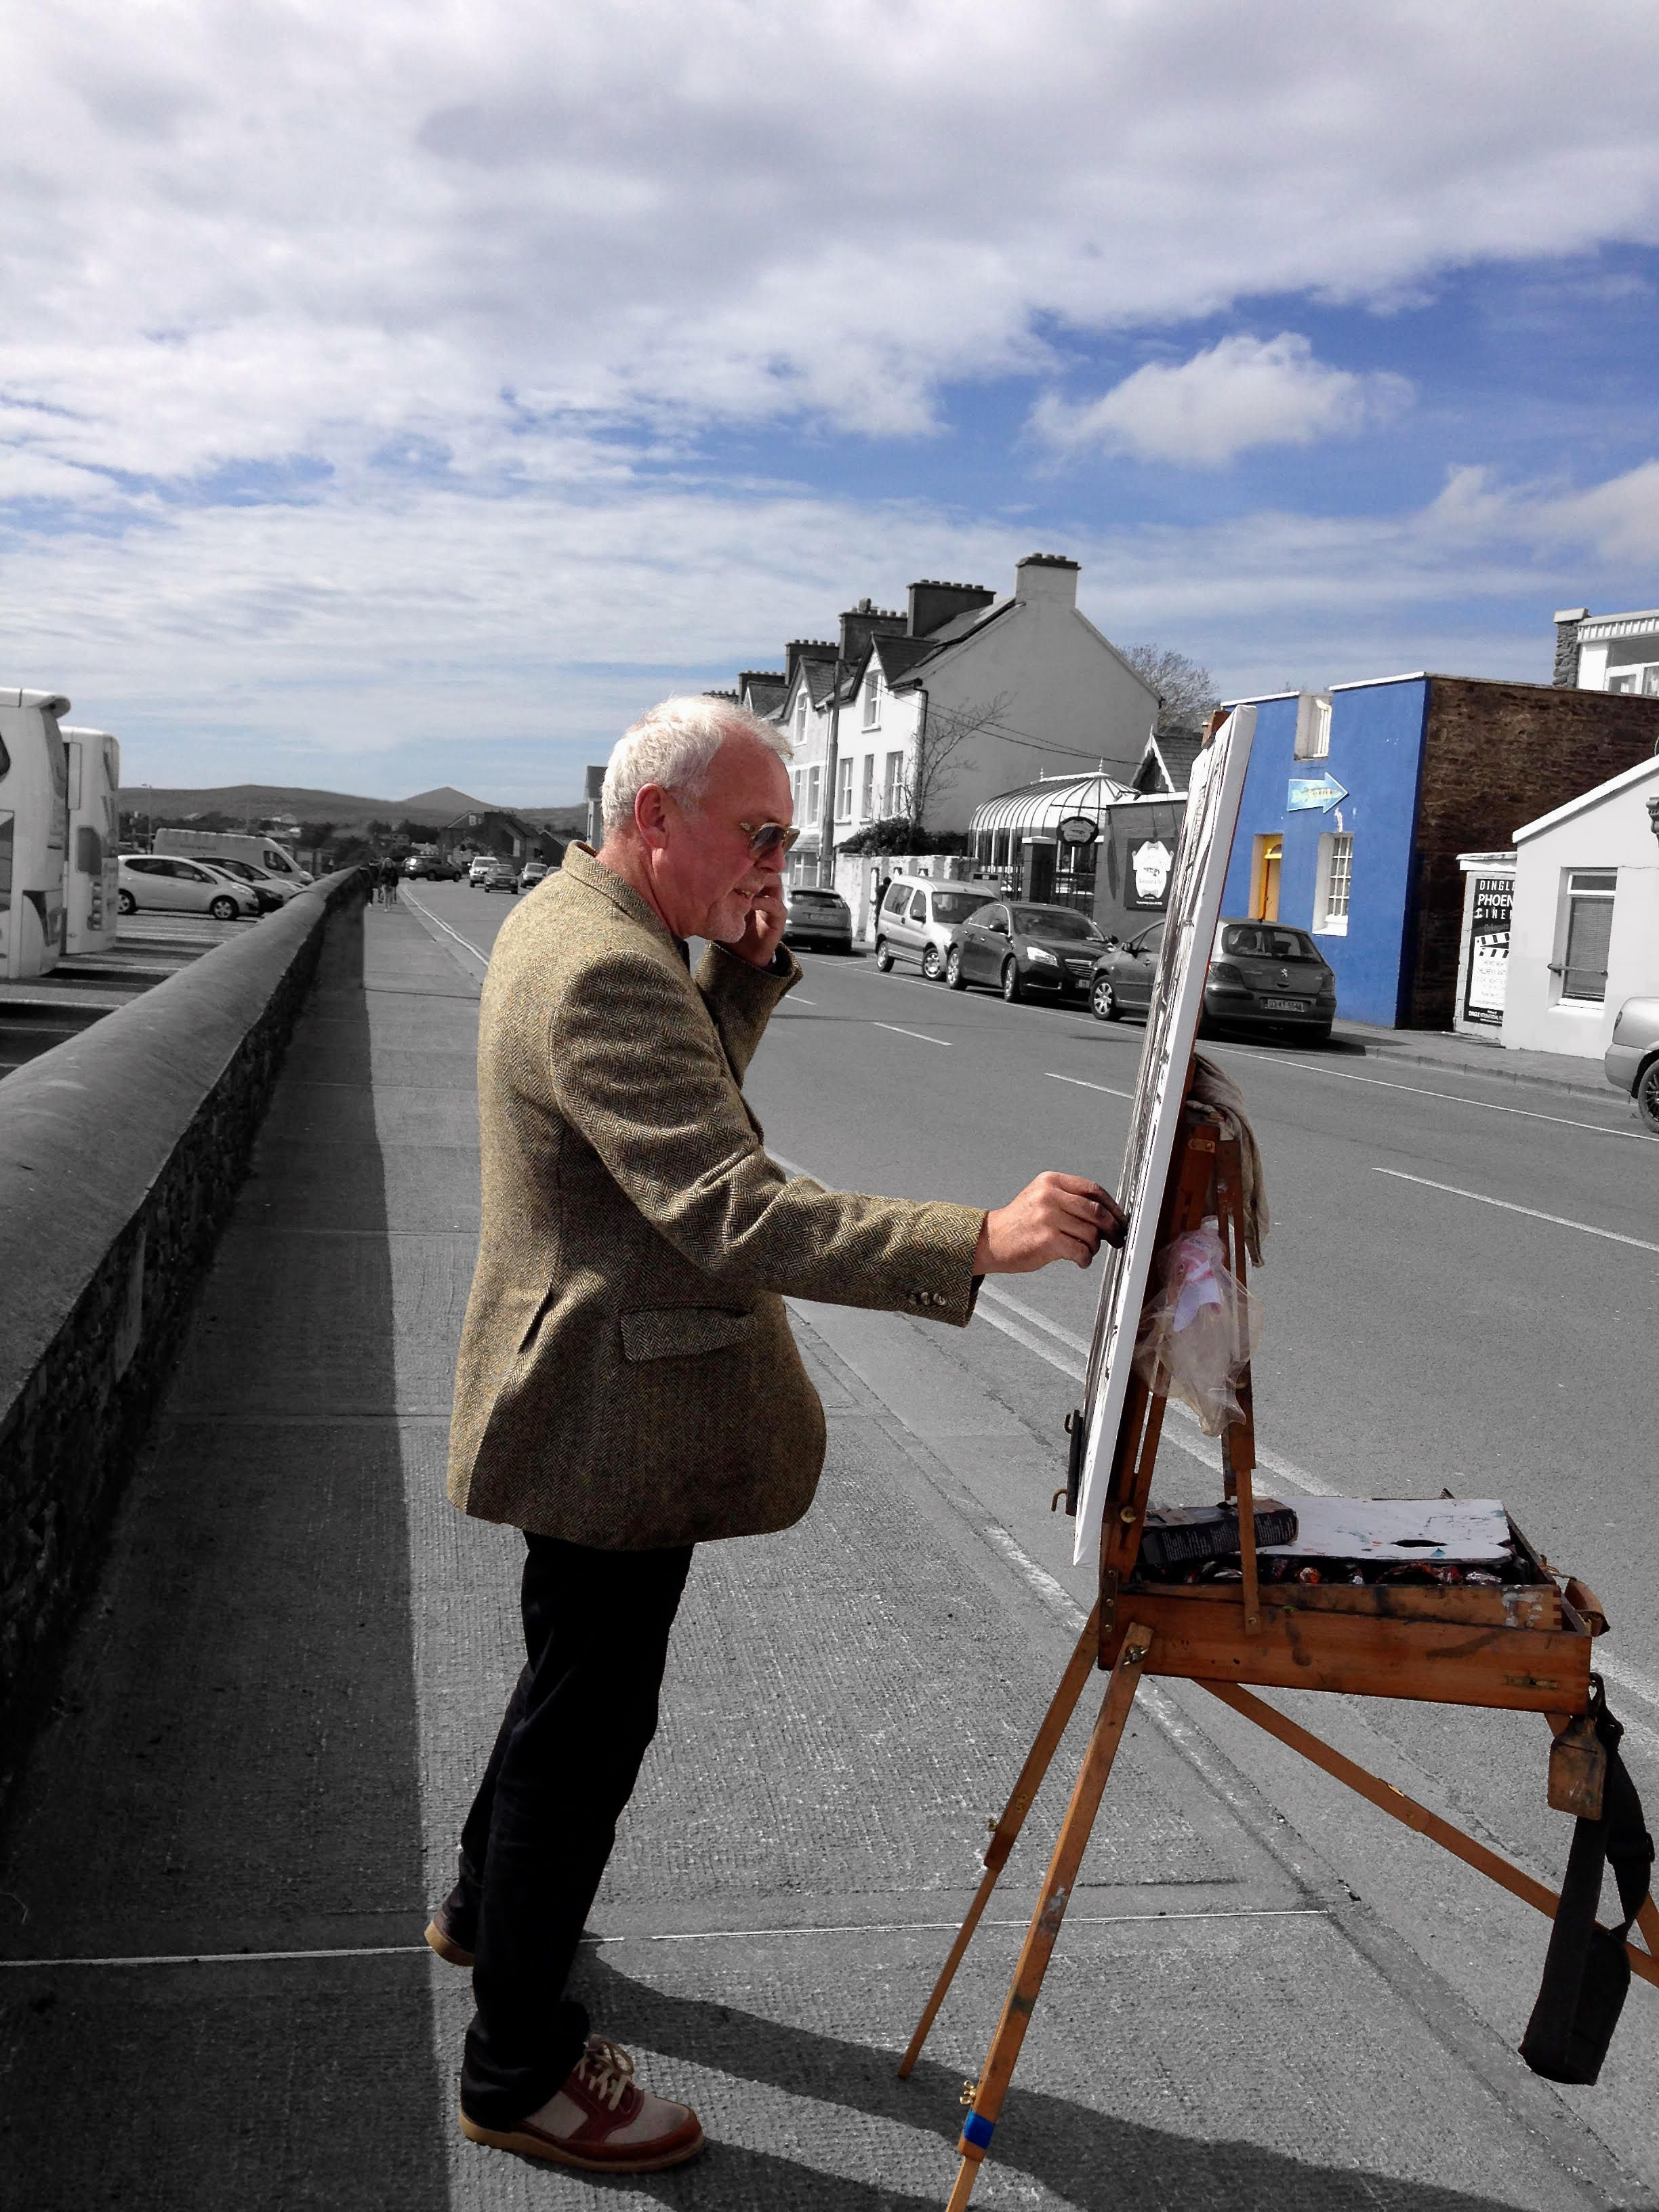 2015 april 15 gerard byrne painting out of the blue restaurant - Blue Restaurant 2015